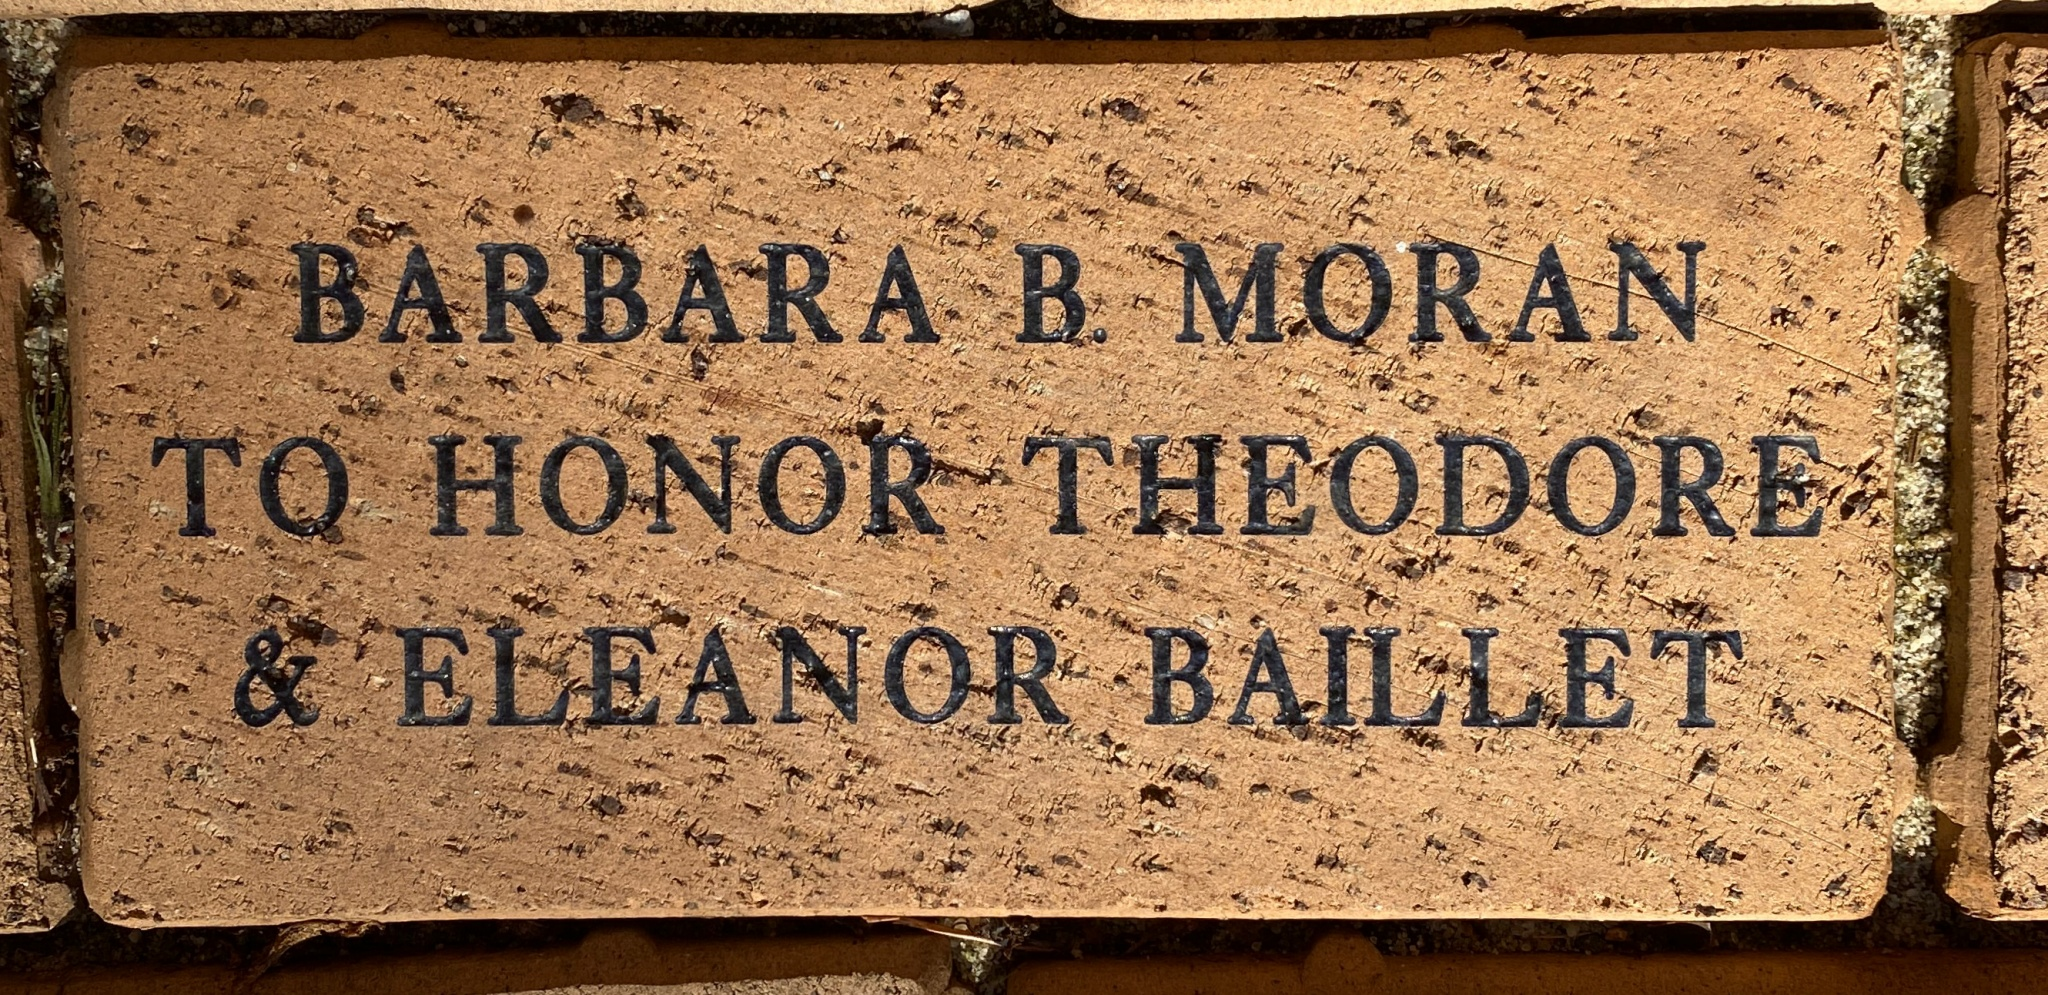 BARBARA B. MORAN TO HONOR THEODORE & ELEANOR BAILLET